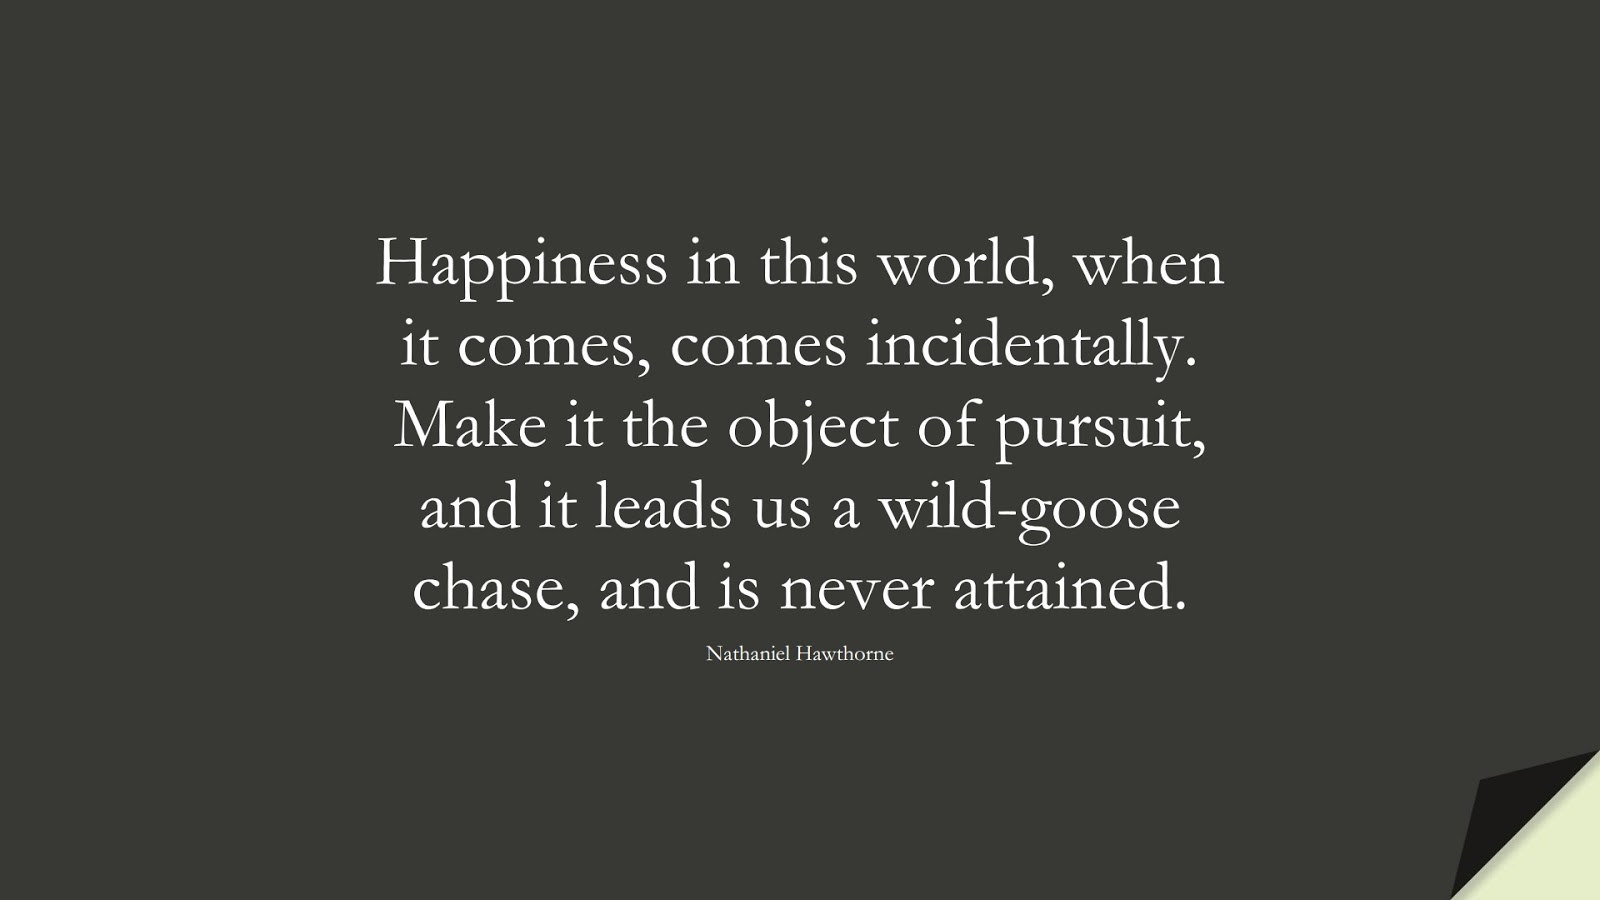 Happiness in this world, when it comes, comes incidentally. Make it the object of pursuit, and it leads us a wild-goose chase, and is never attained. (Nathaniel Hawthorne);  #HappinessQuotes